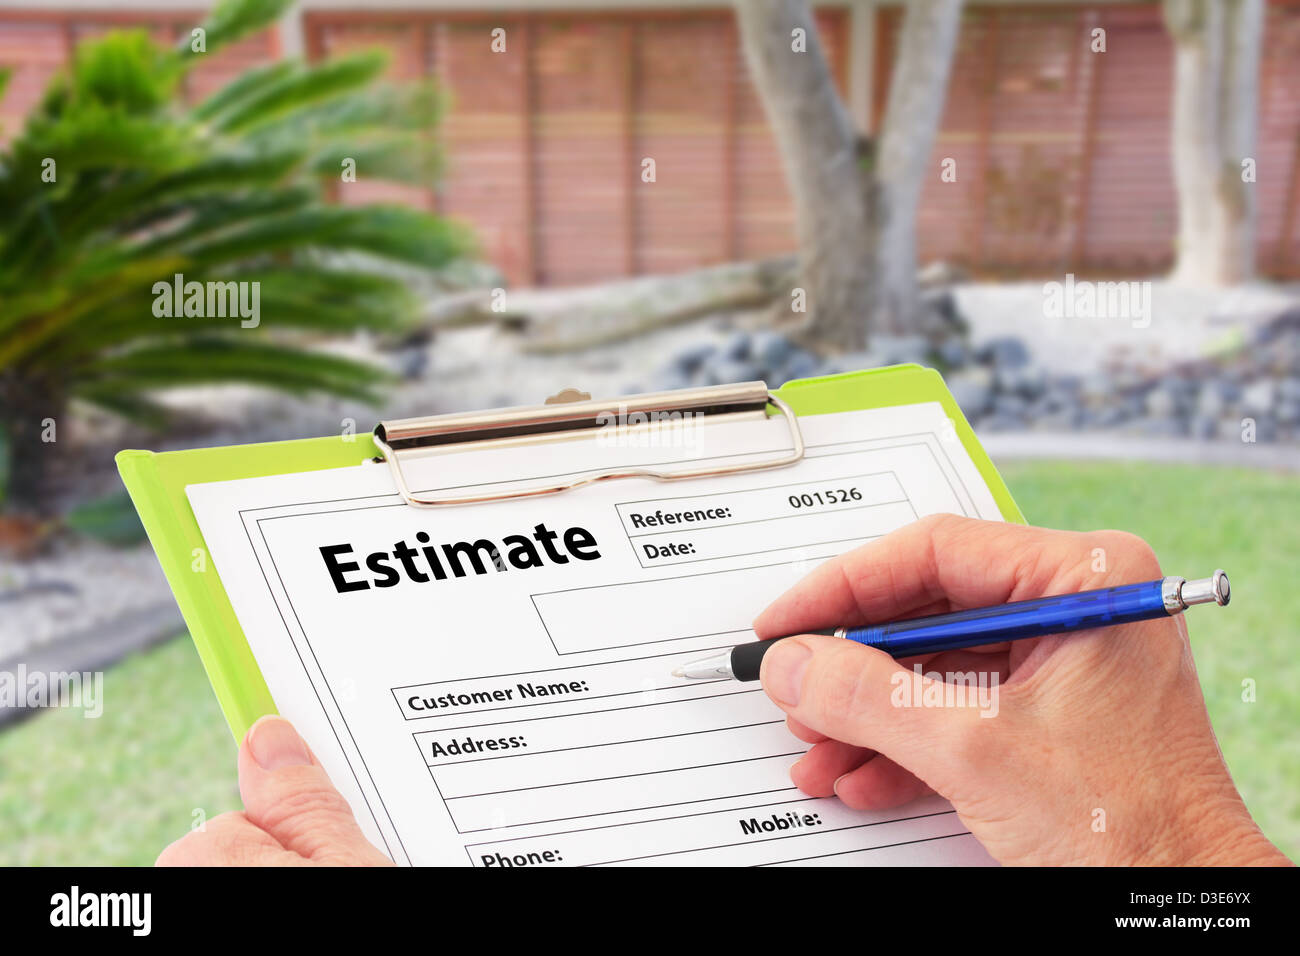 Hand Writing an Estimate for Garden Maintenance - Stock Image